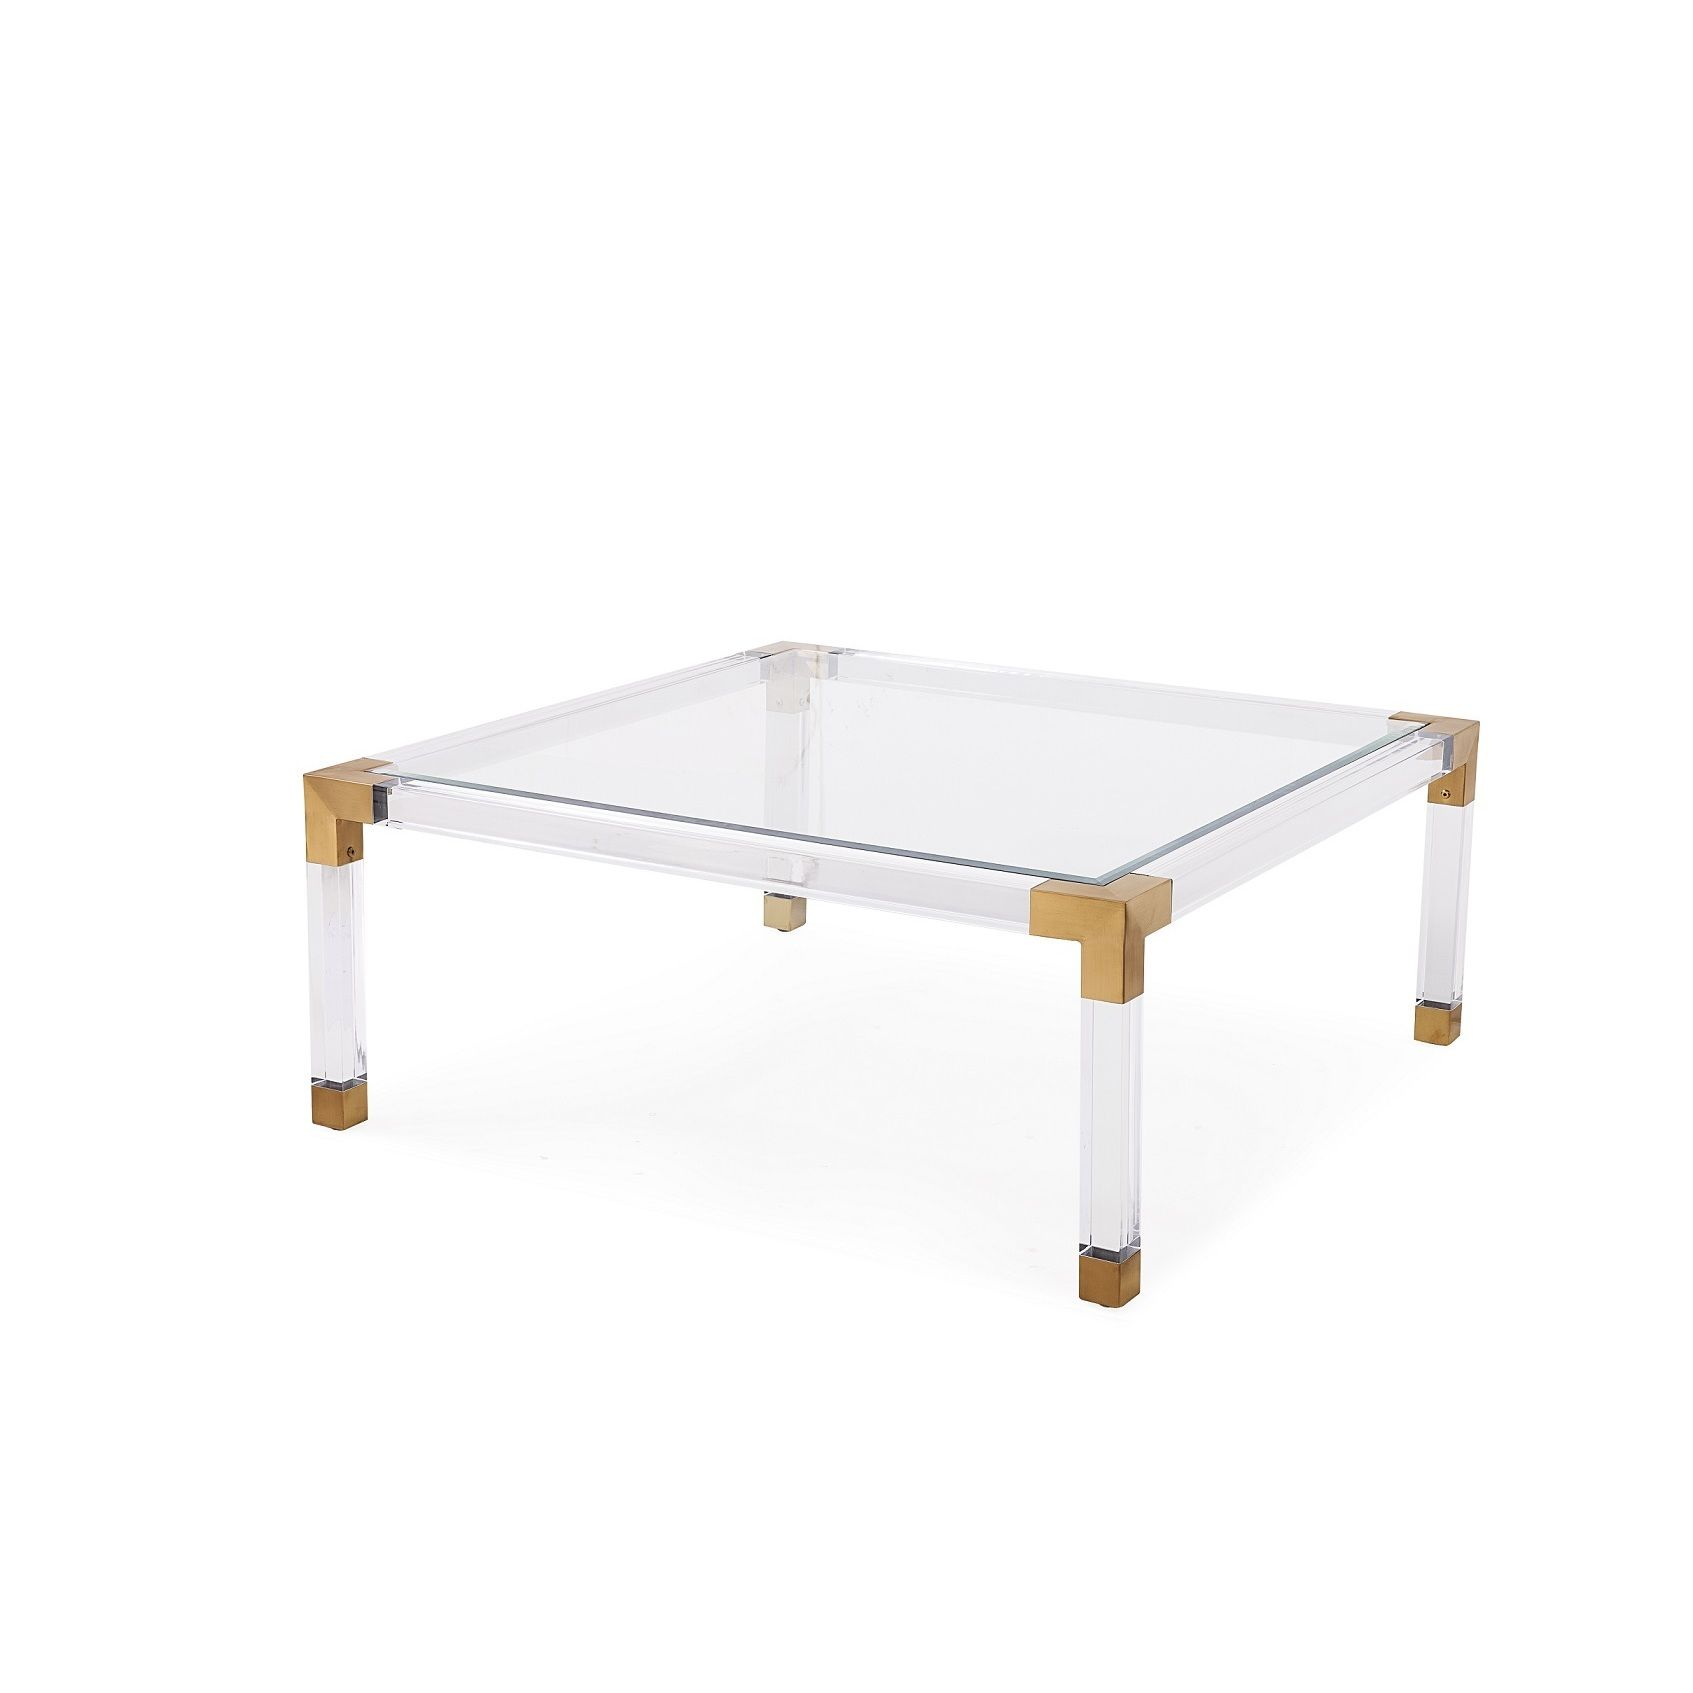 Havenhurst coffee table featuring 10mm clear beveled glass top